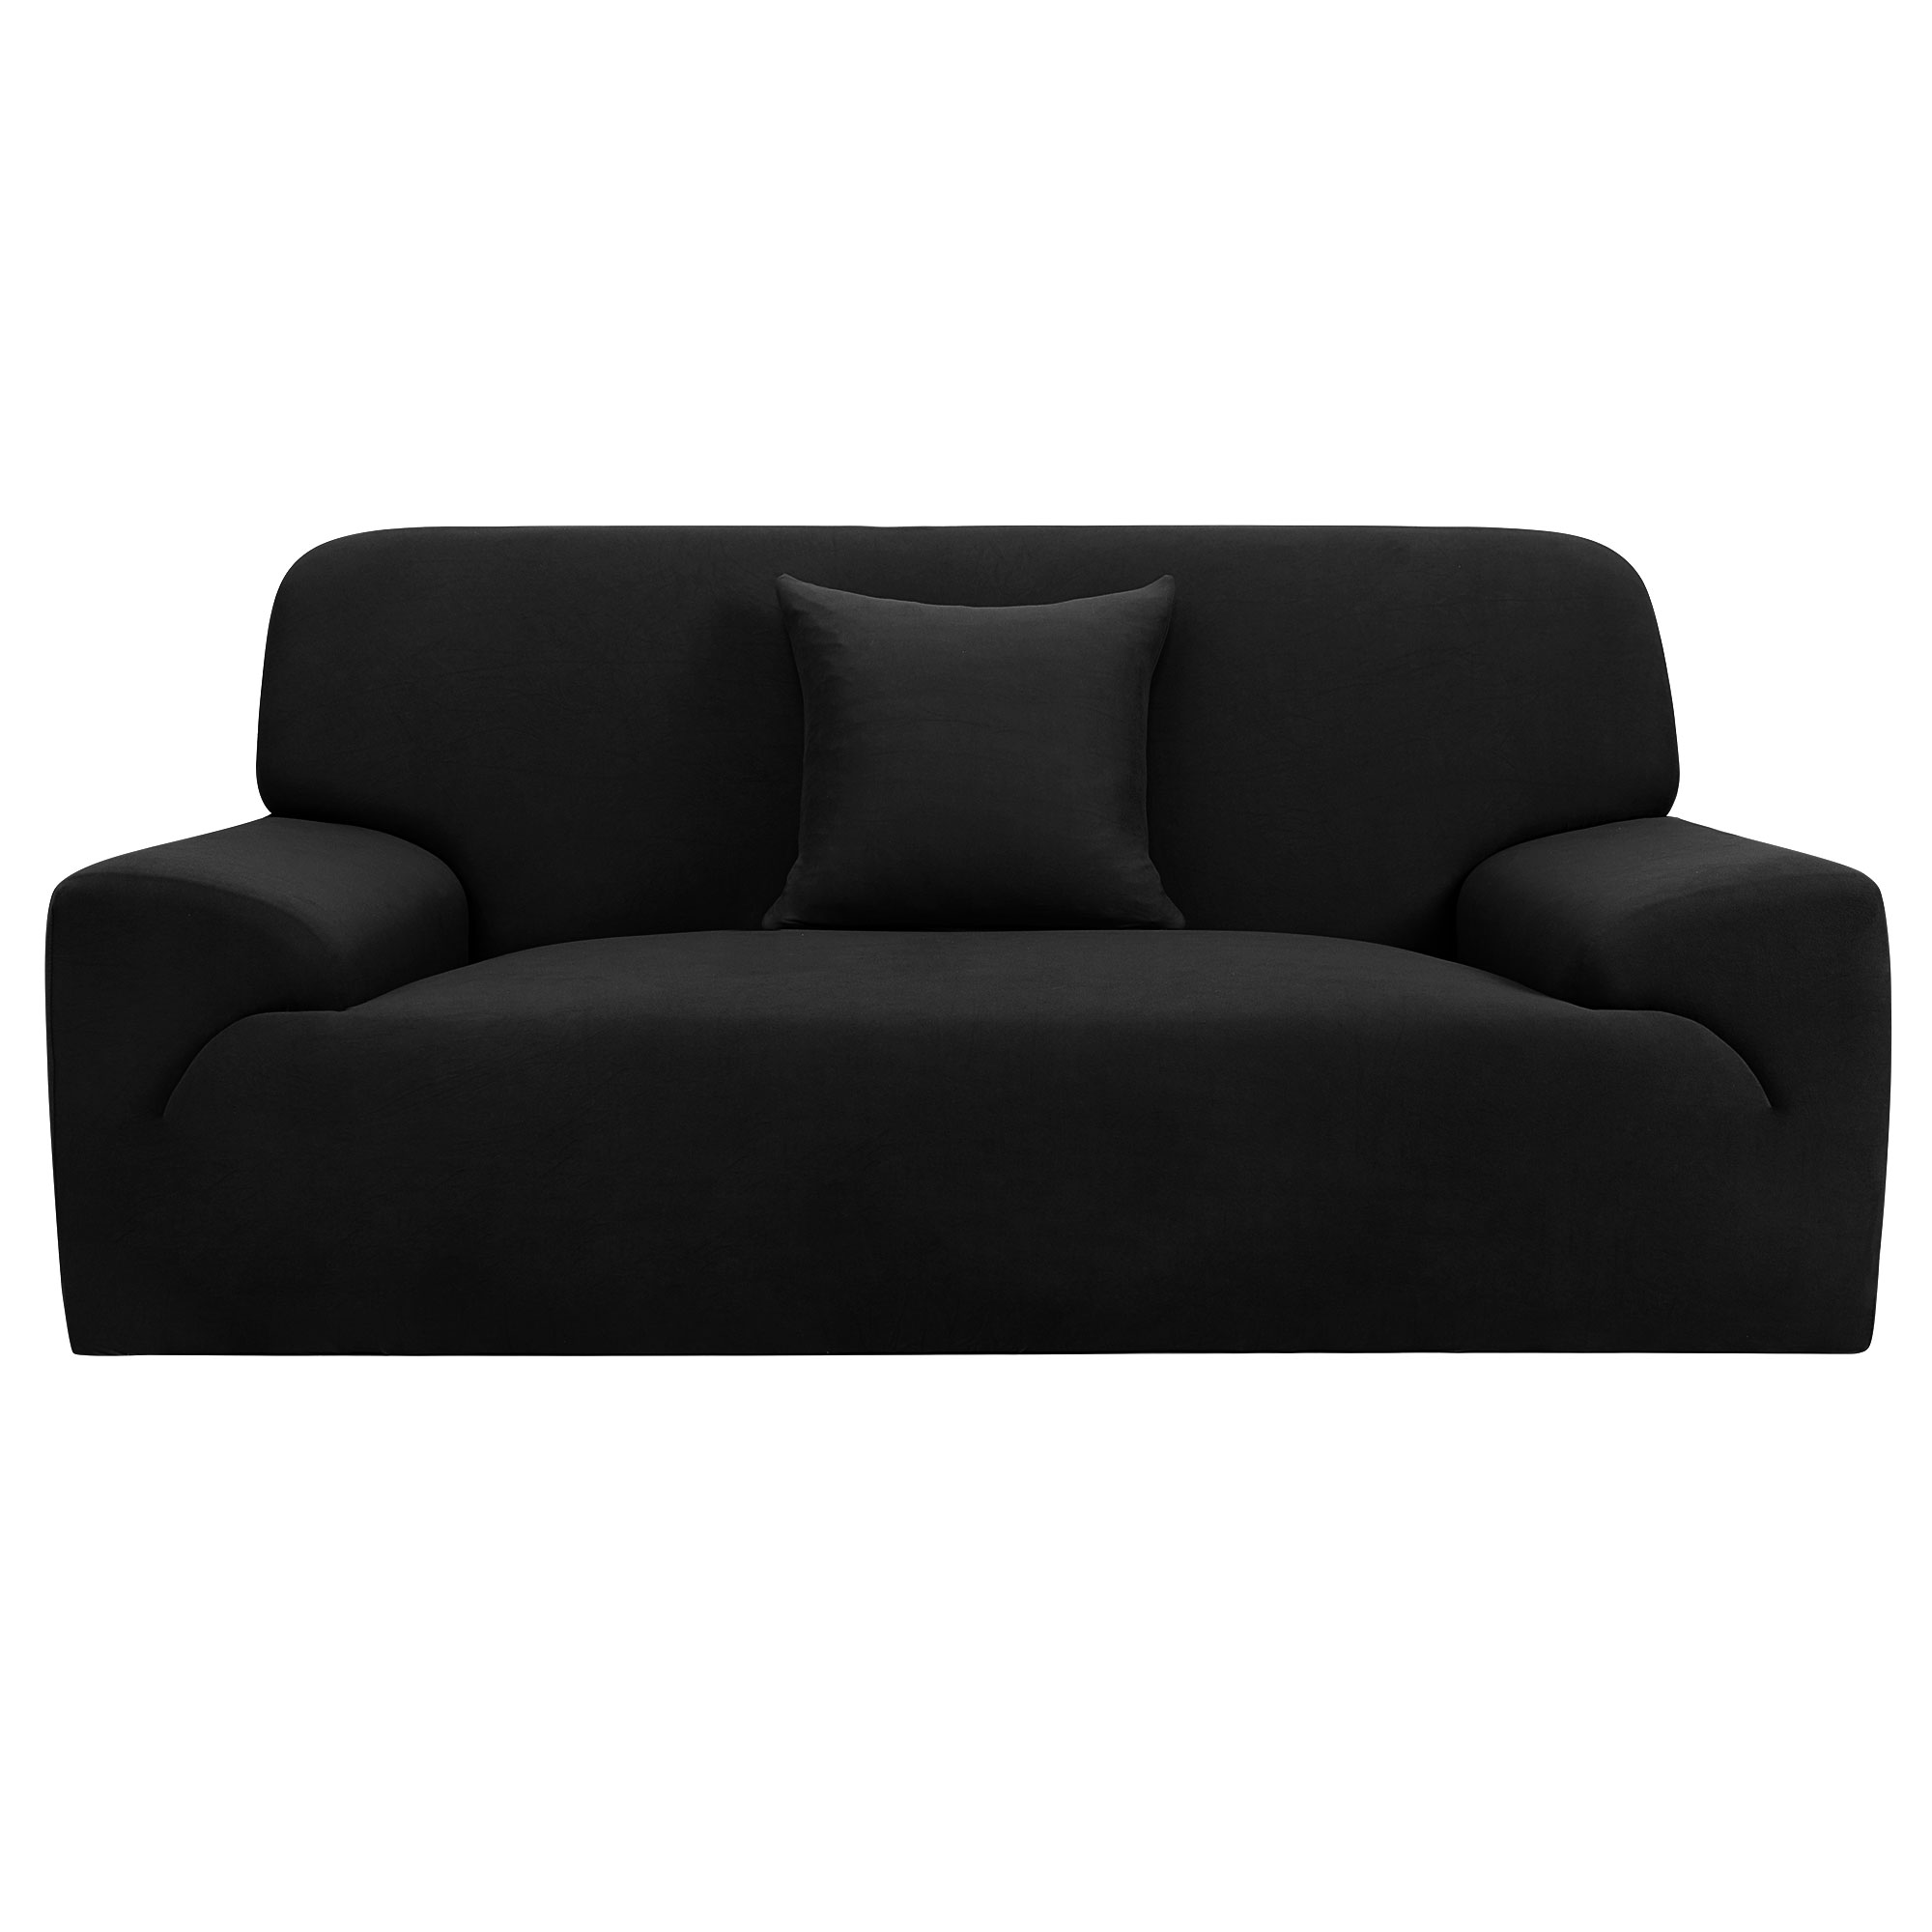 Stretch Chair Sofa Covers 1 2 3 4 Seater Black Loveseat-2seater